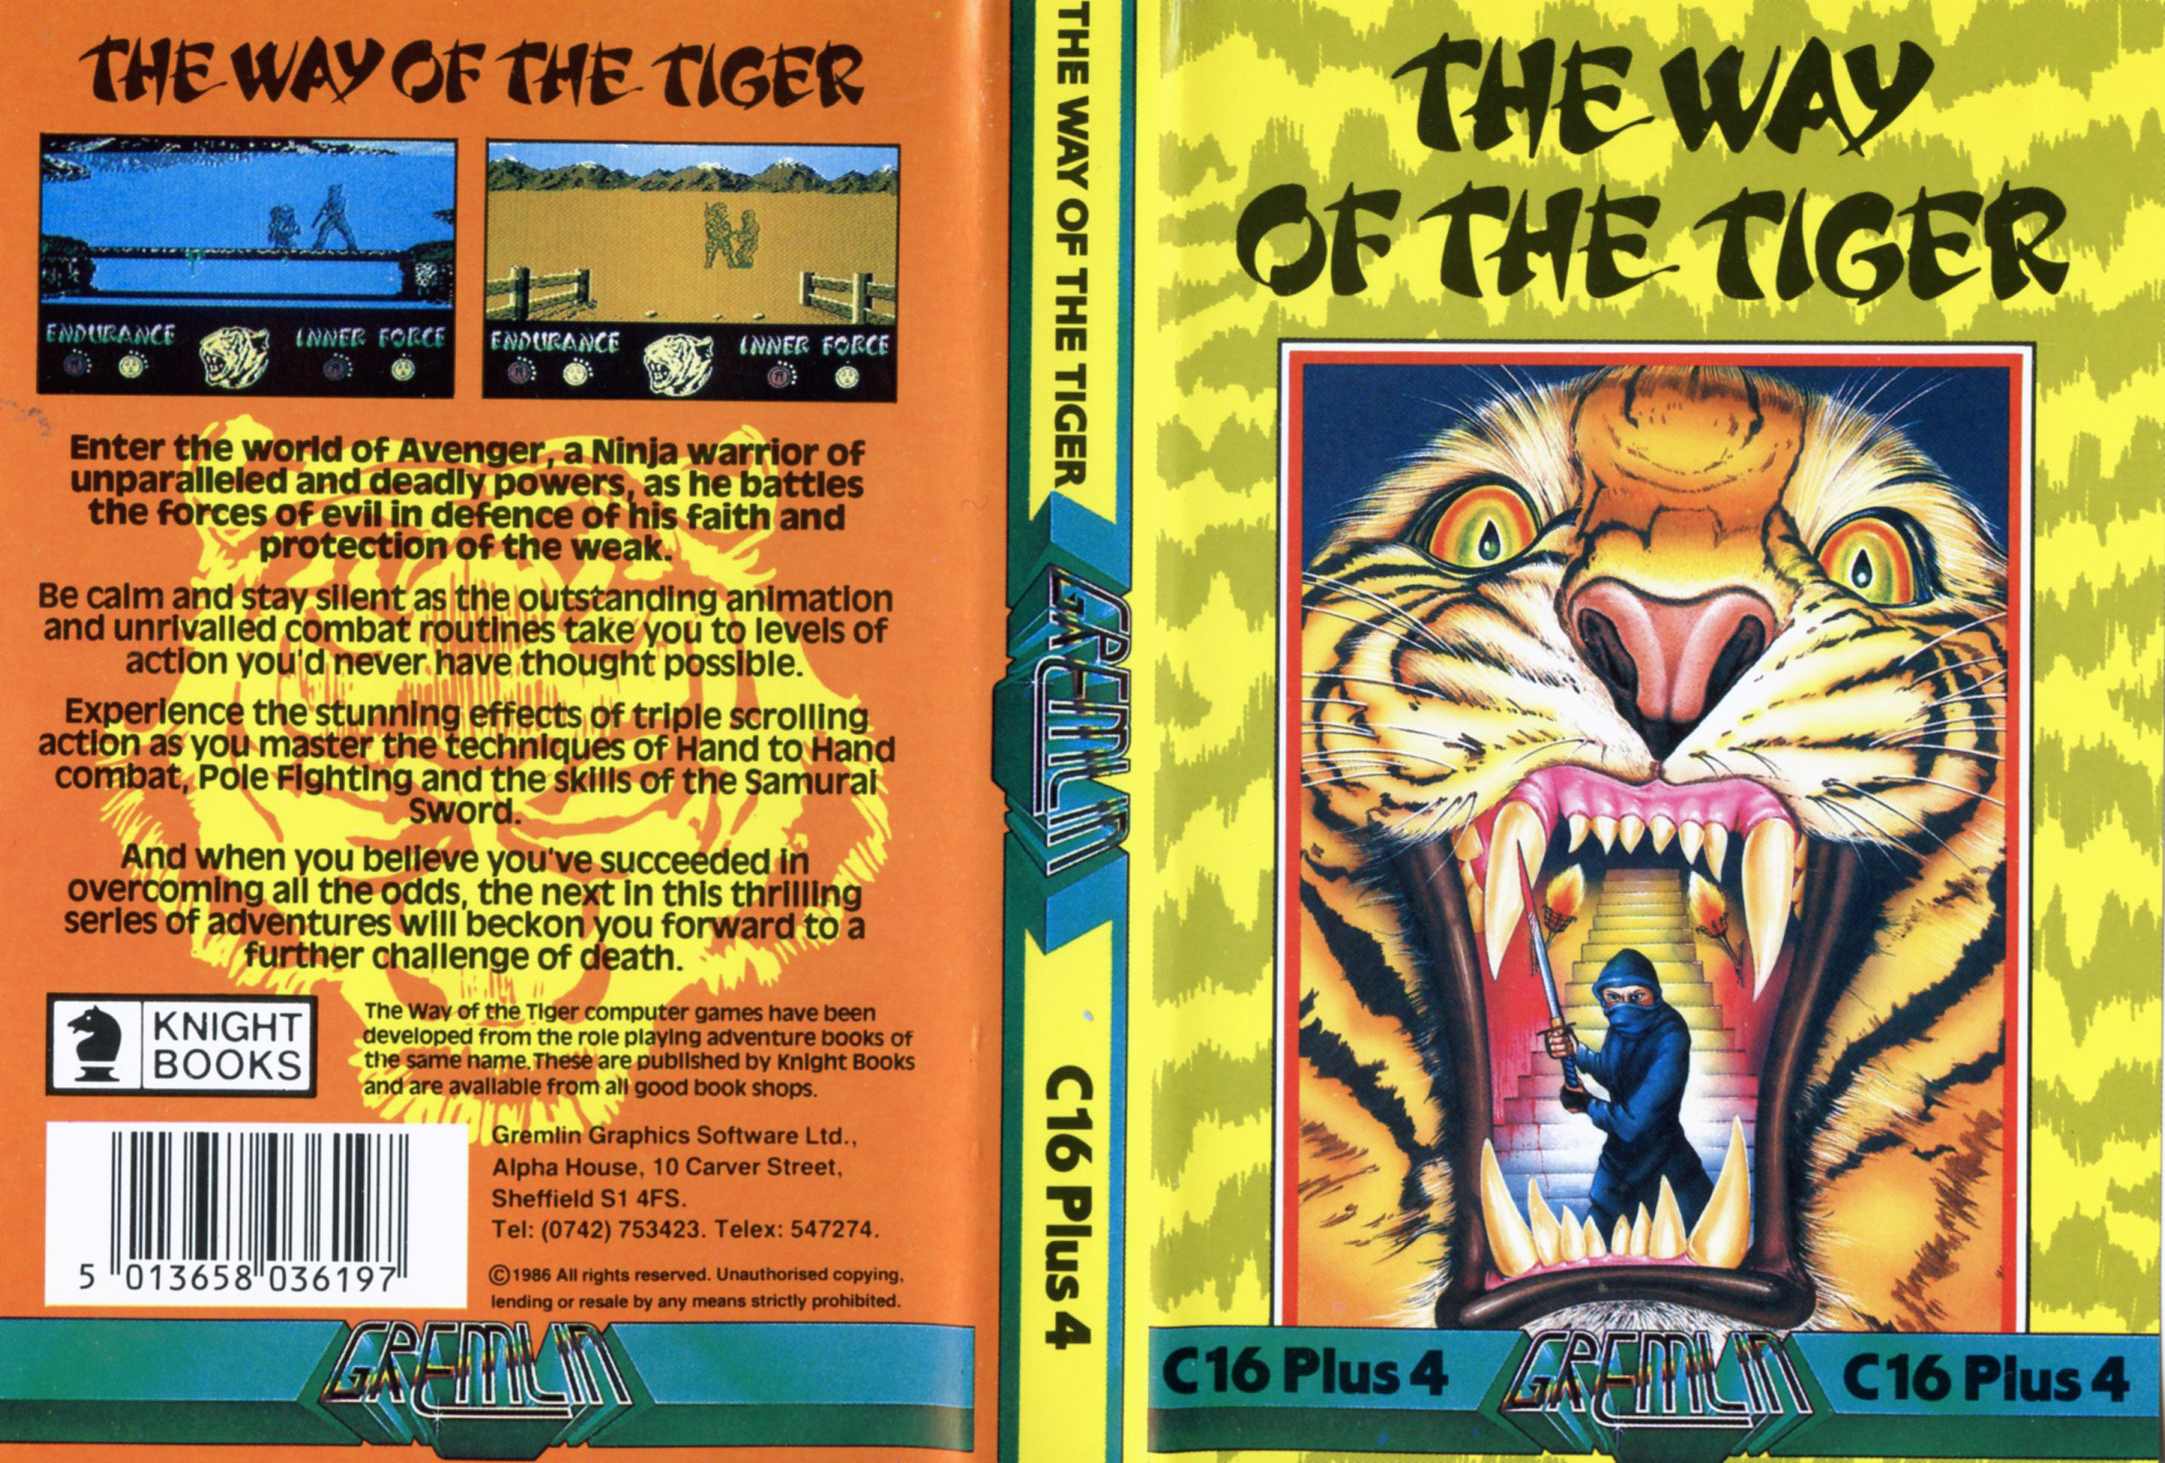 The Way of the Tiger (C16/Plus4)